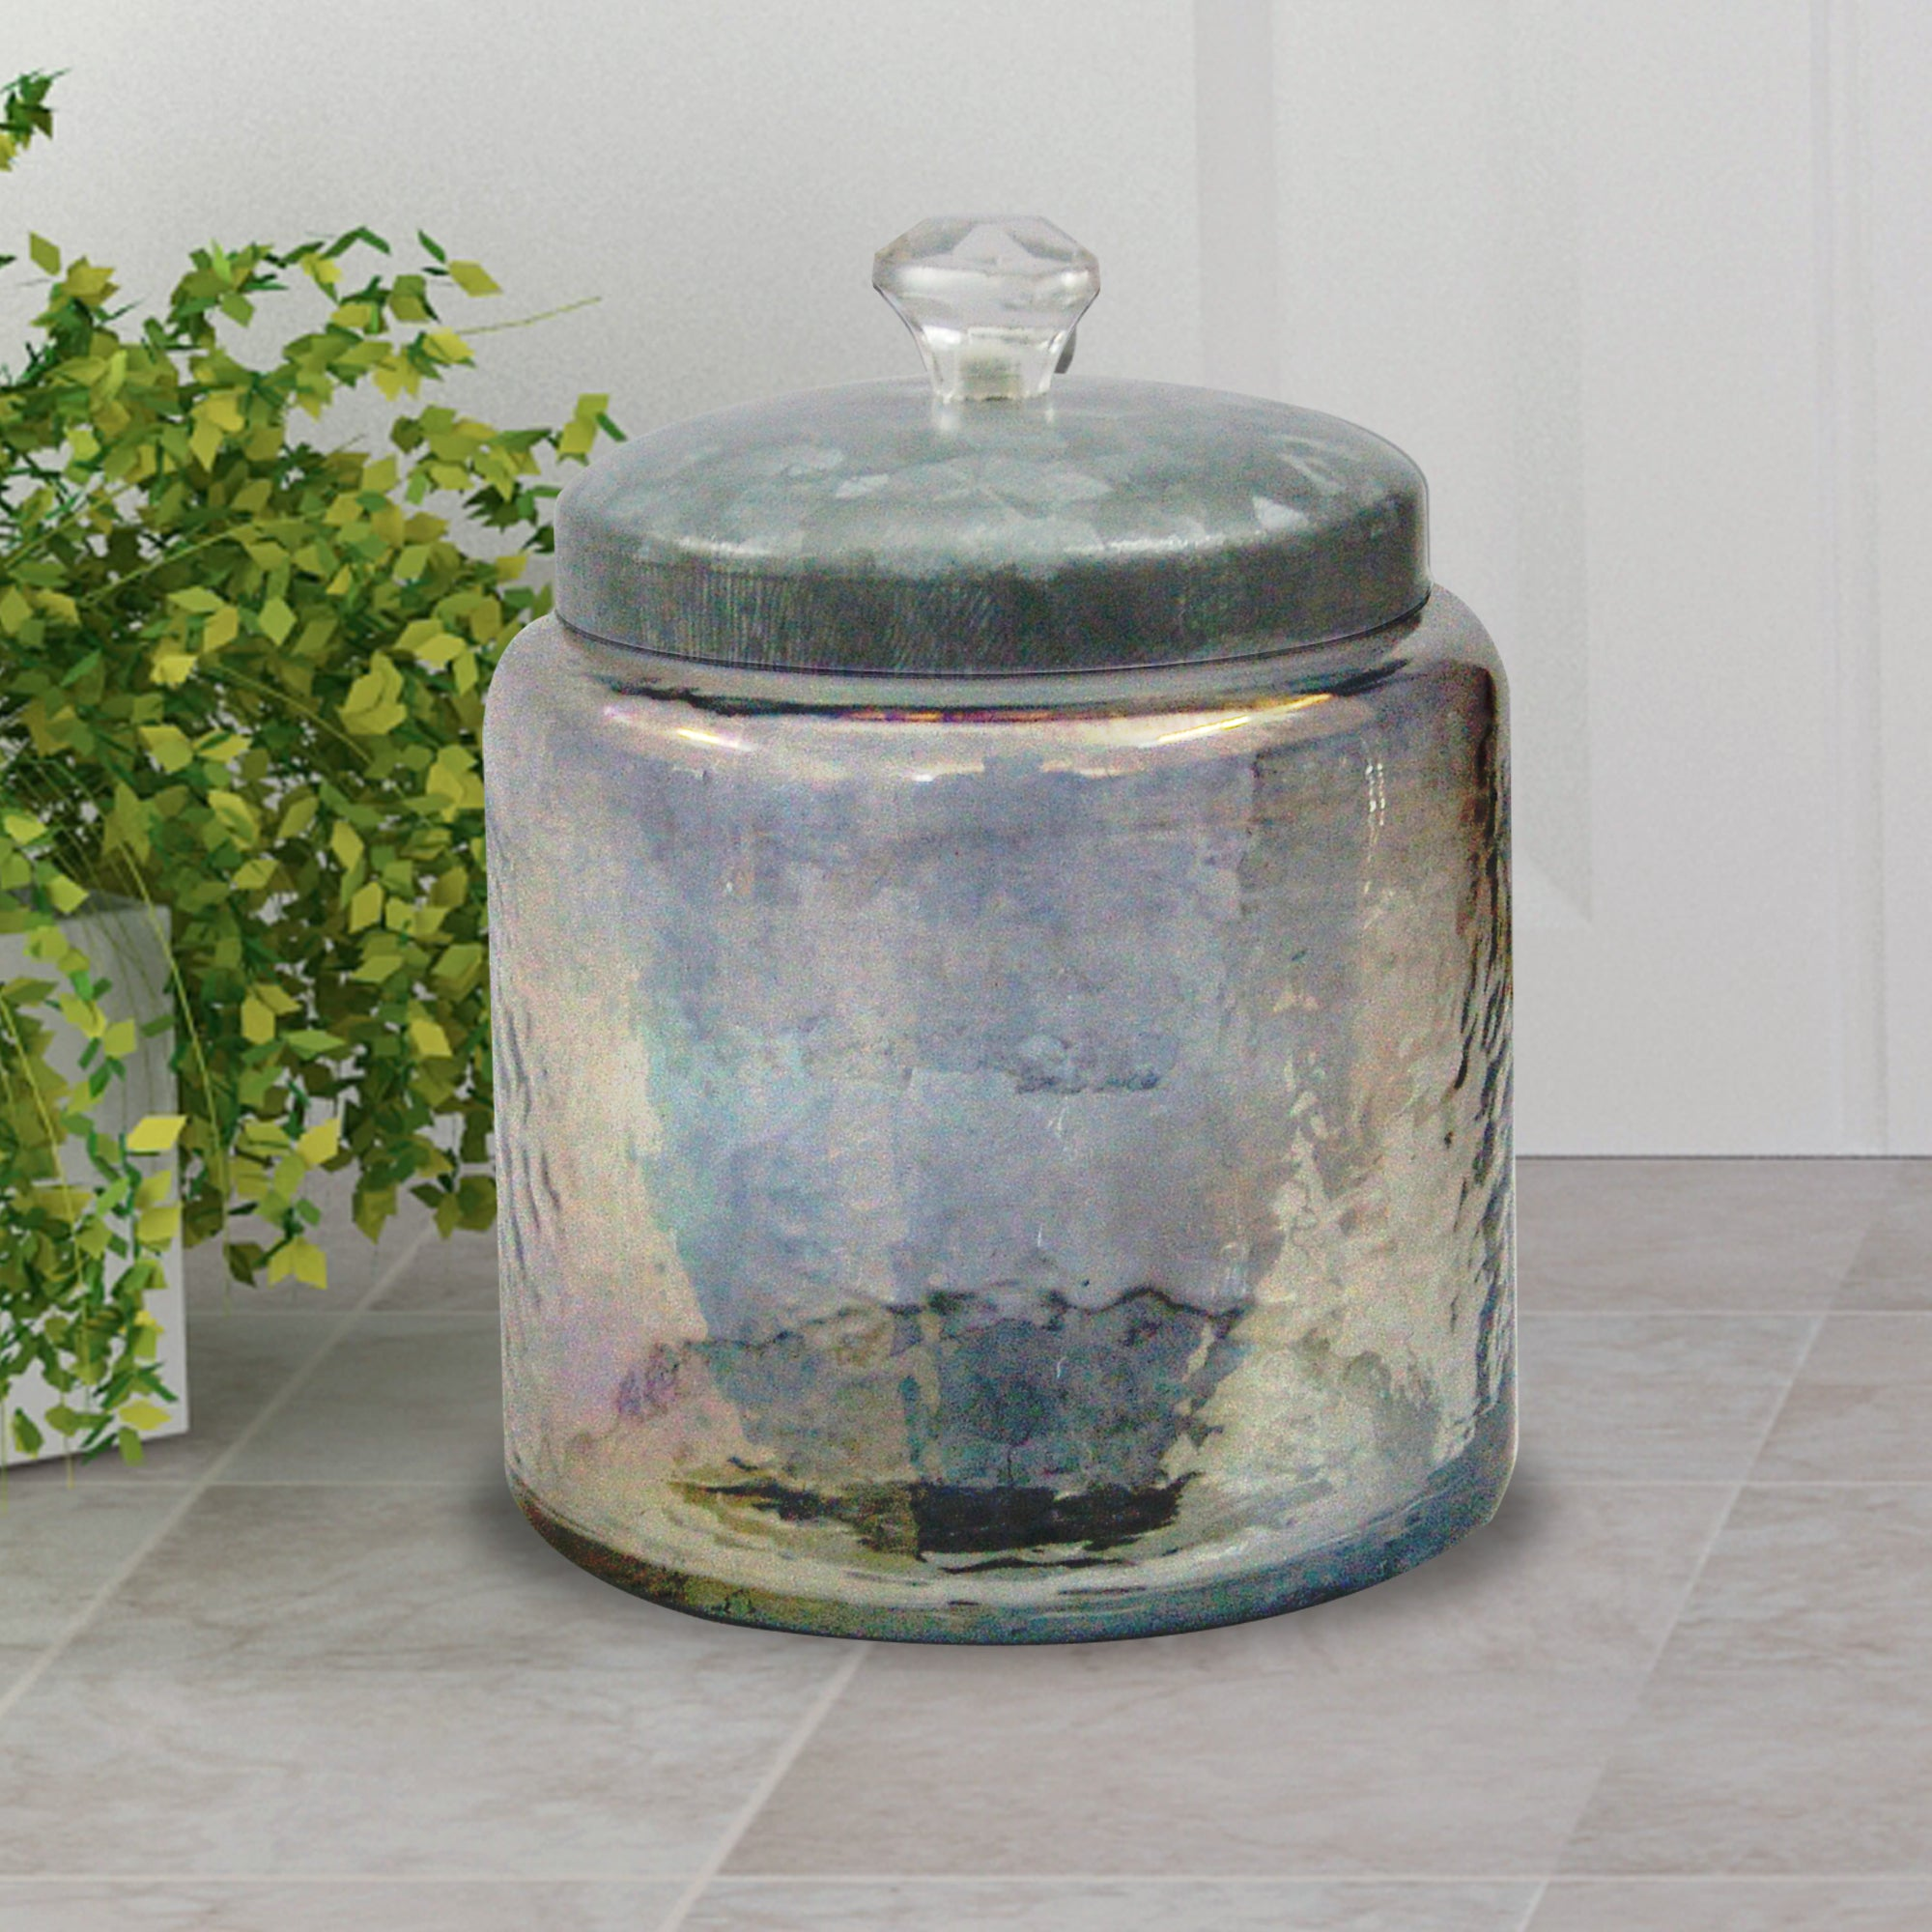 CLEAR LUSTRE GLASS CANISTER LARGE GC-5416L - Nusteel